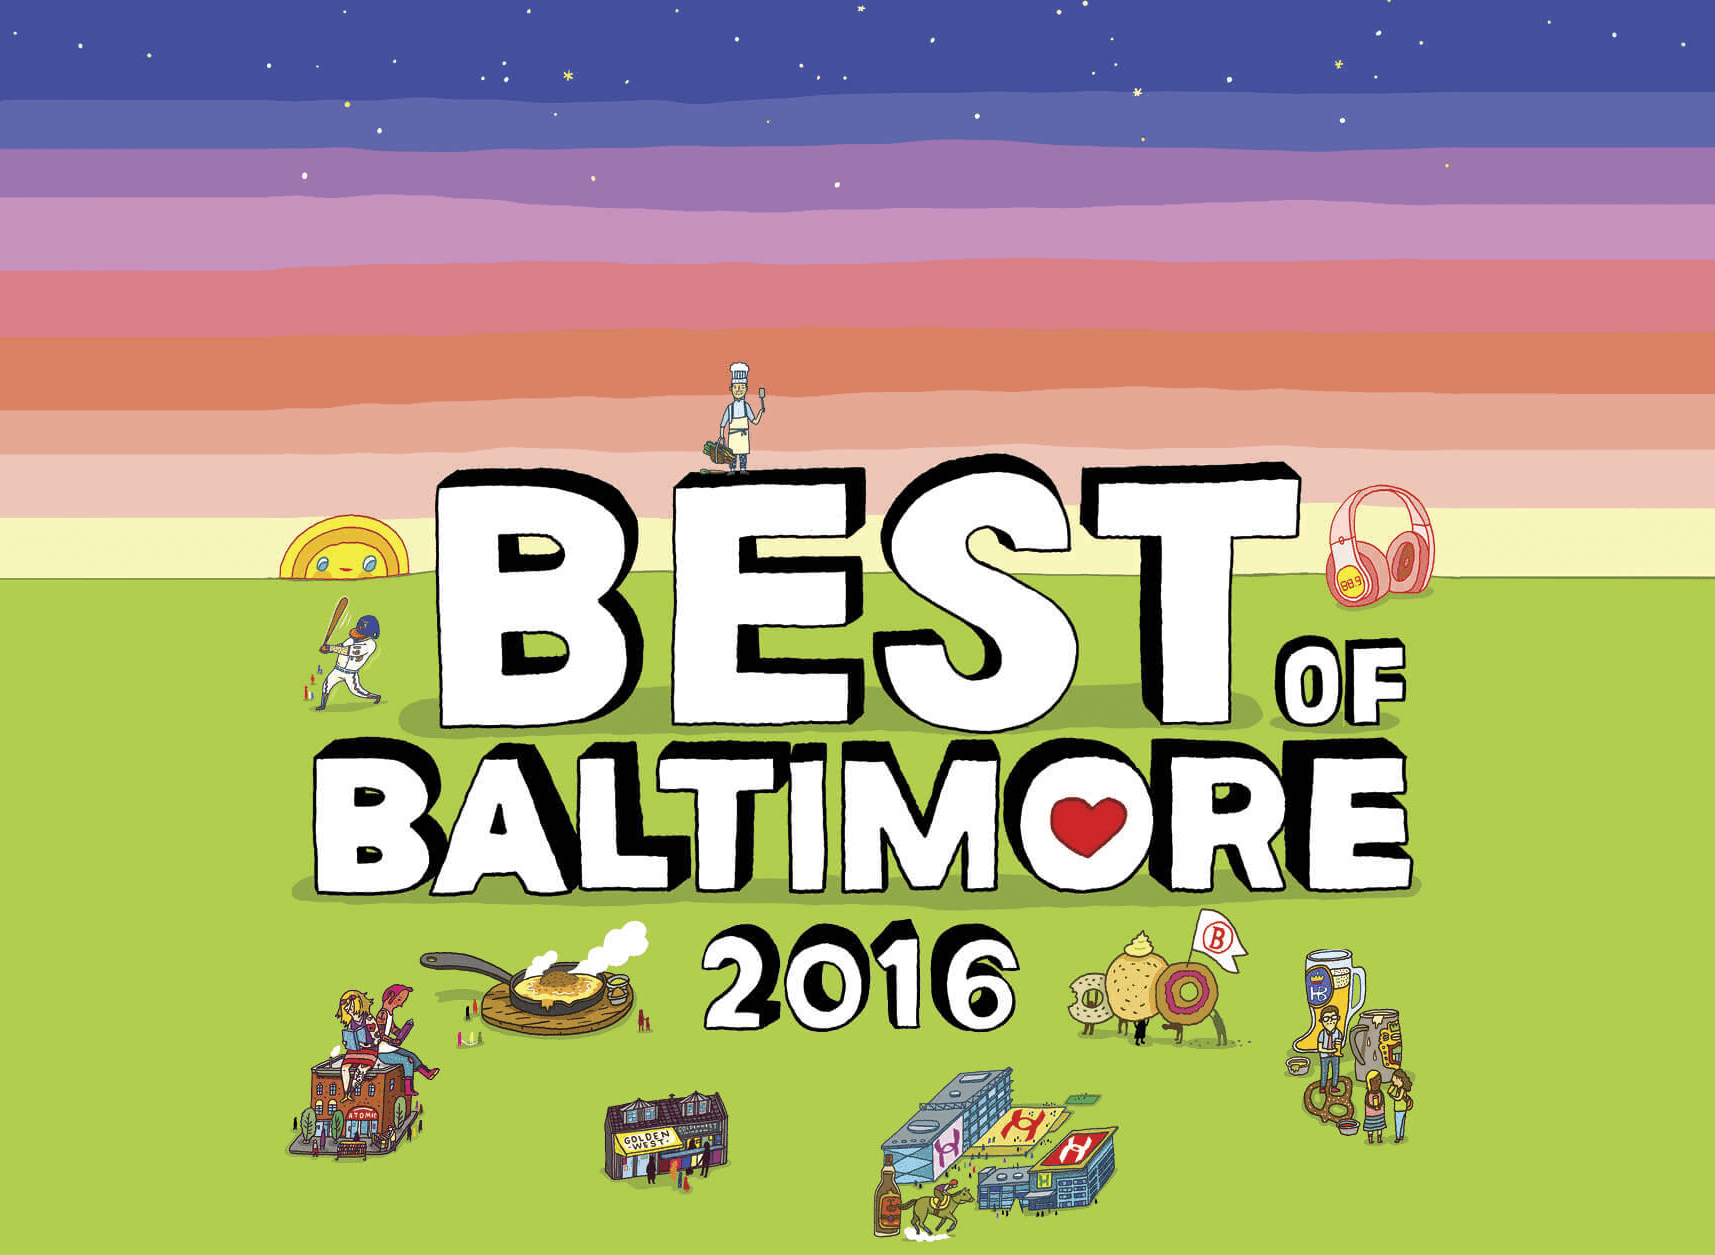 9677d203e49 It s safe to say 2015 wasn t Baltimore s finest year. But in 2016